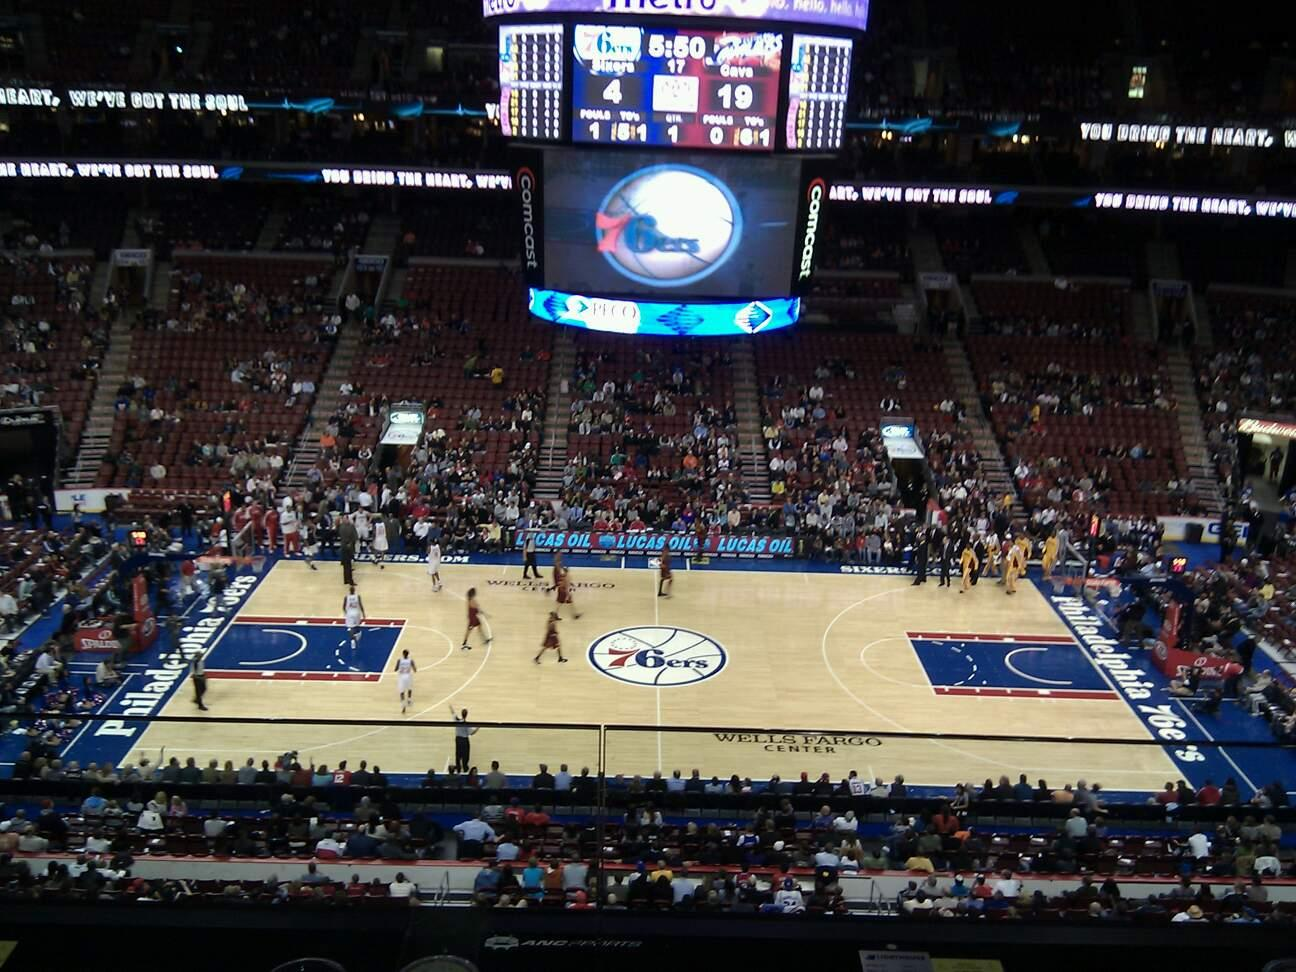 Wells Fargo Center Section 213 Row 2 Seat 6